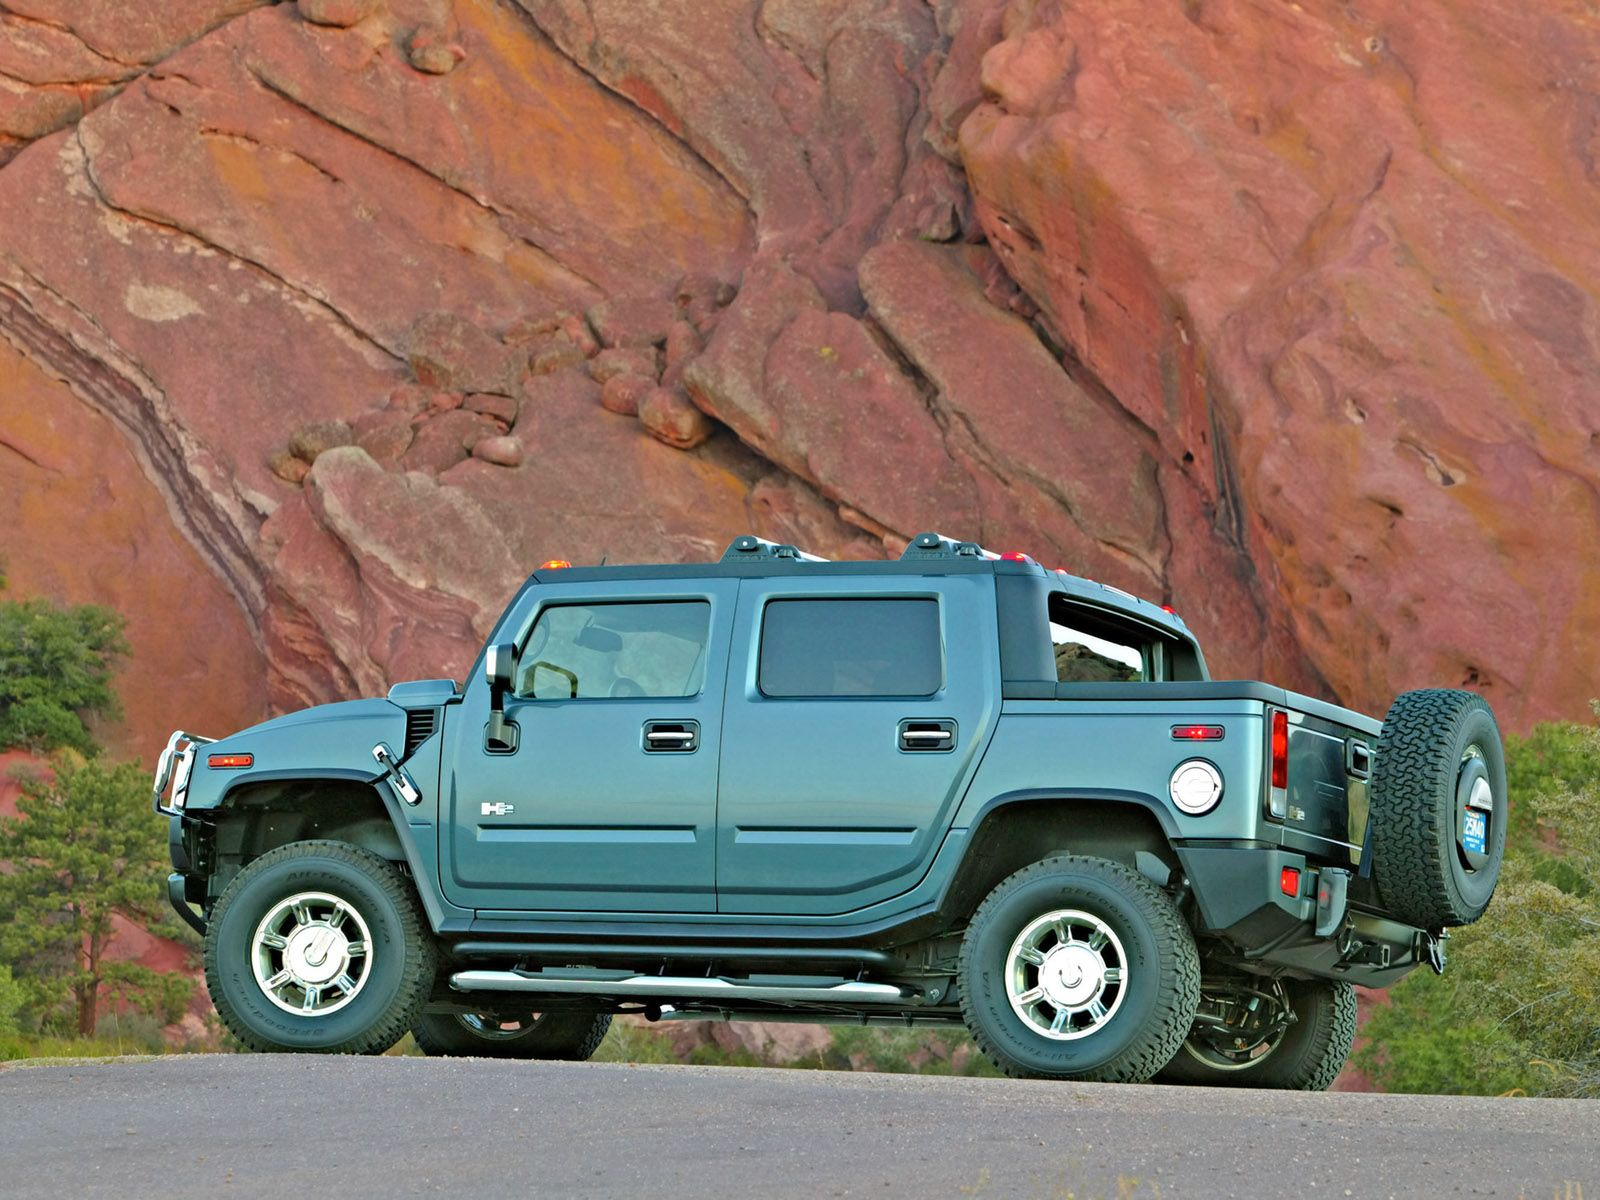 893cc2f6eaaaef3eccff40baff5b0f52 Cool Review About 2009 Hummer H2 Sut with Cool Pictures Cars Review